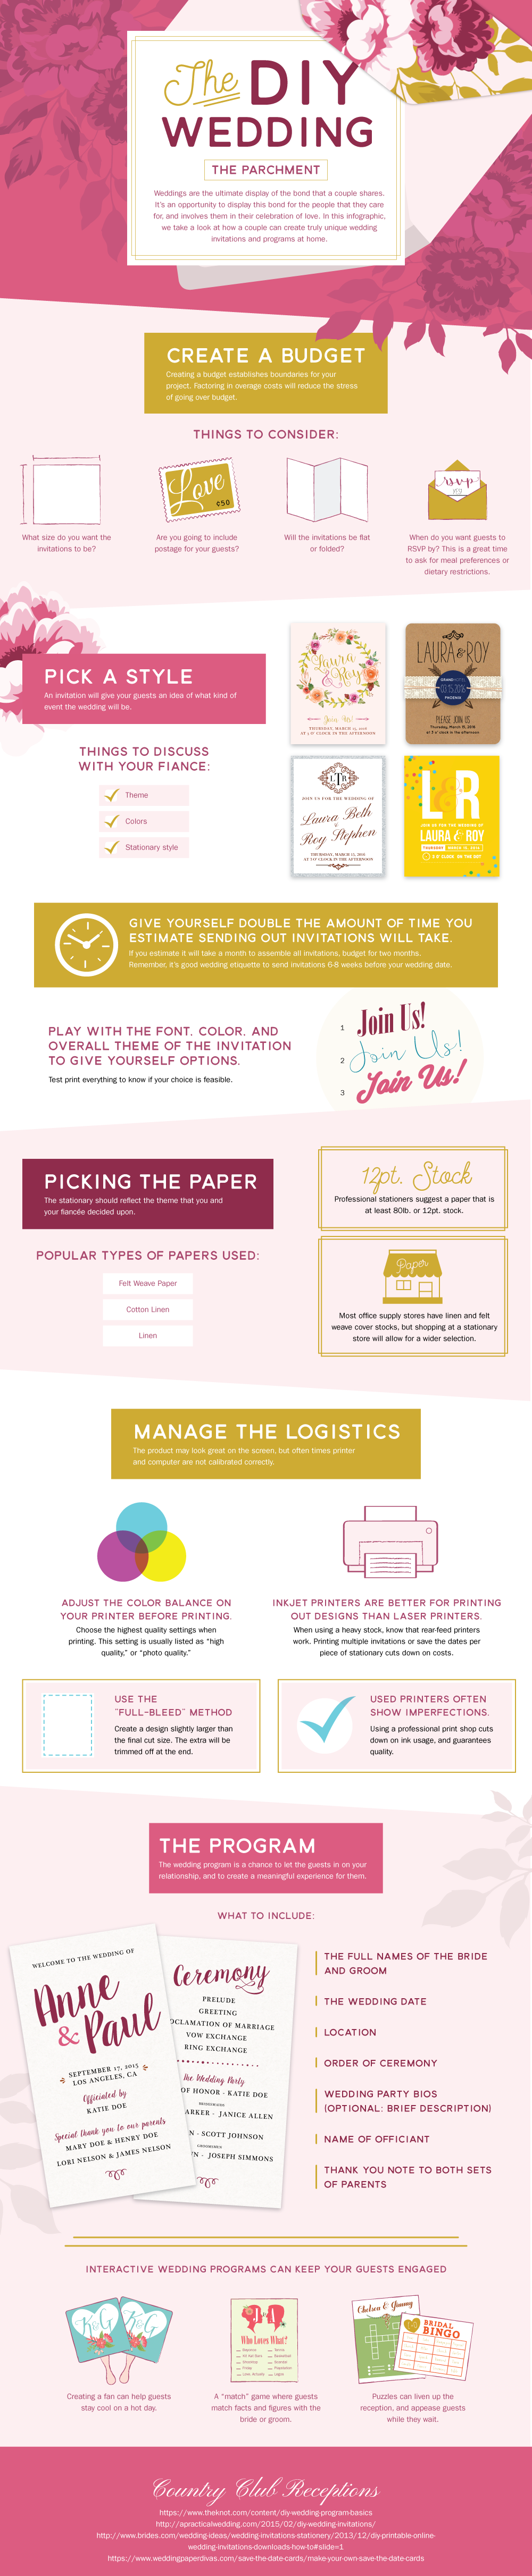 The DIY Wedding #infographic